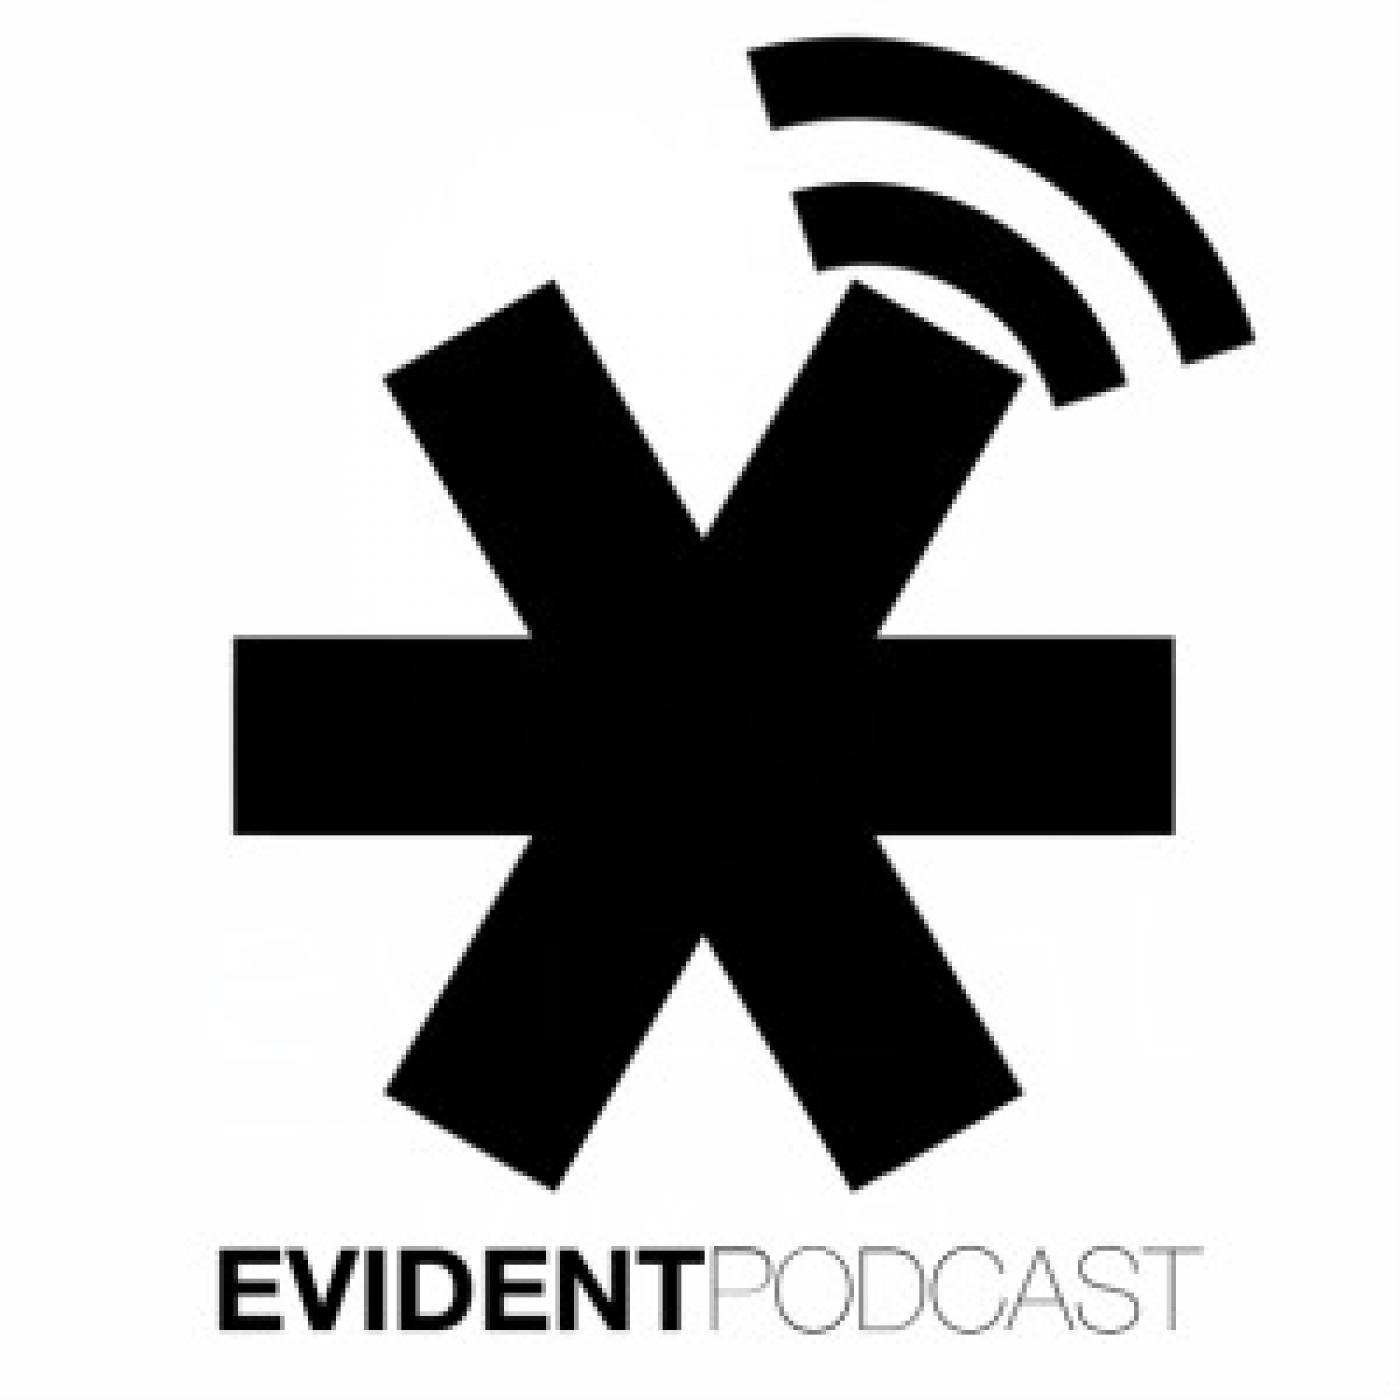 Evident Church Podcast